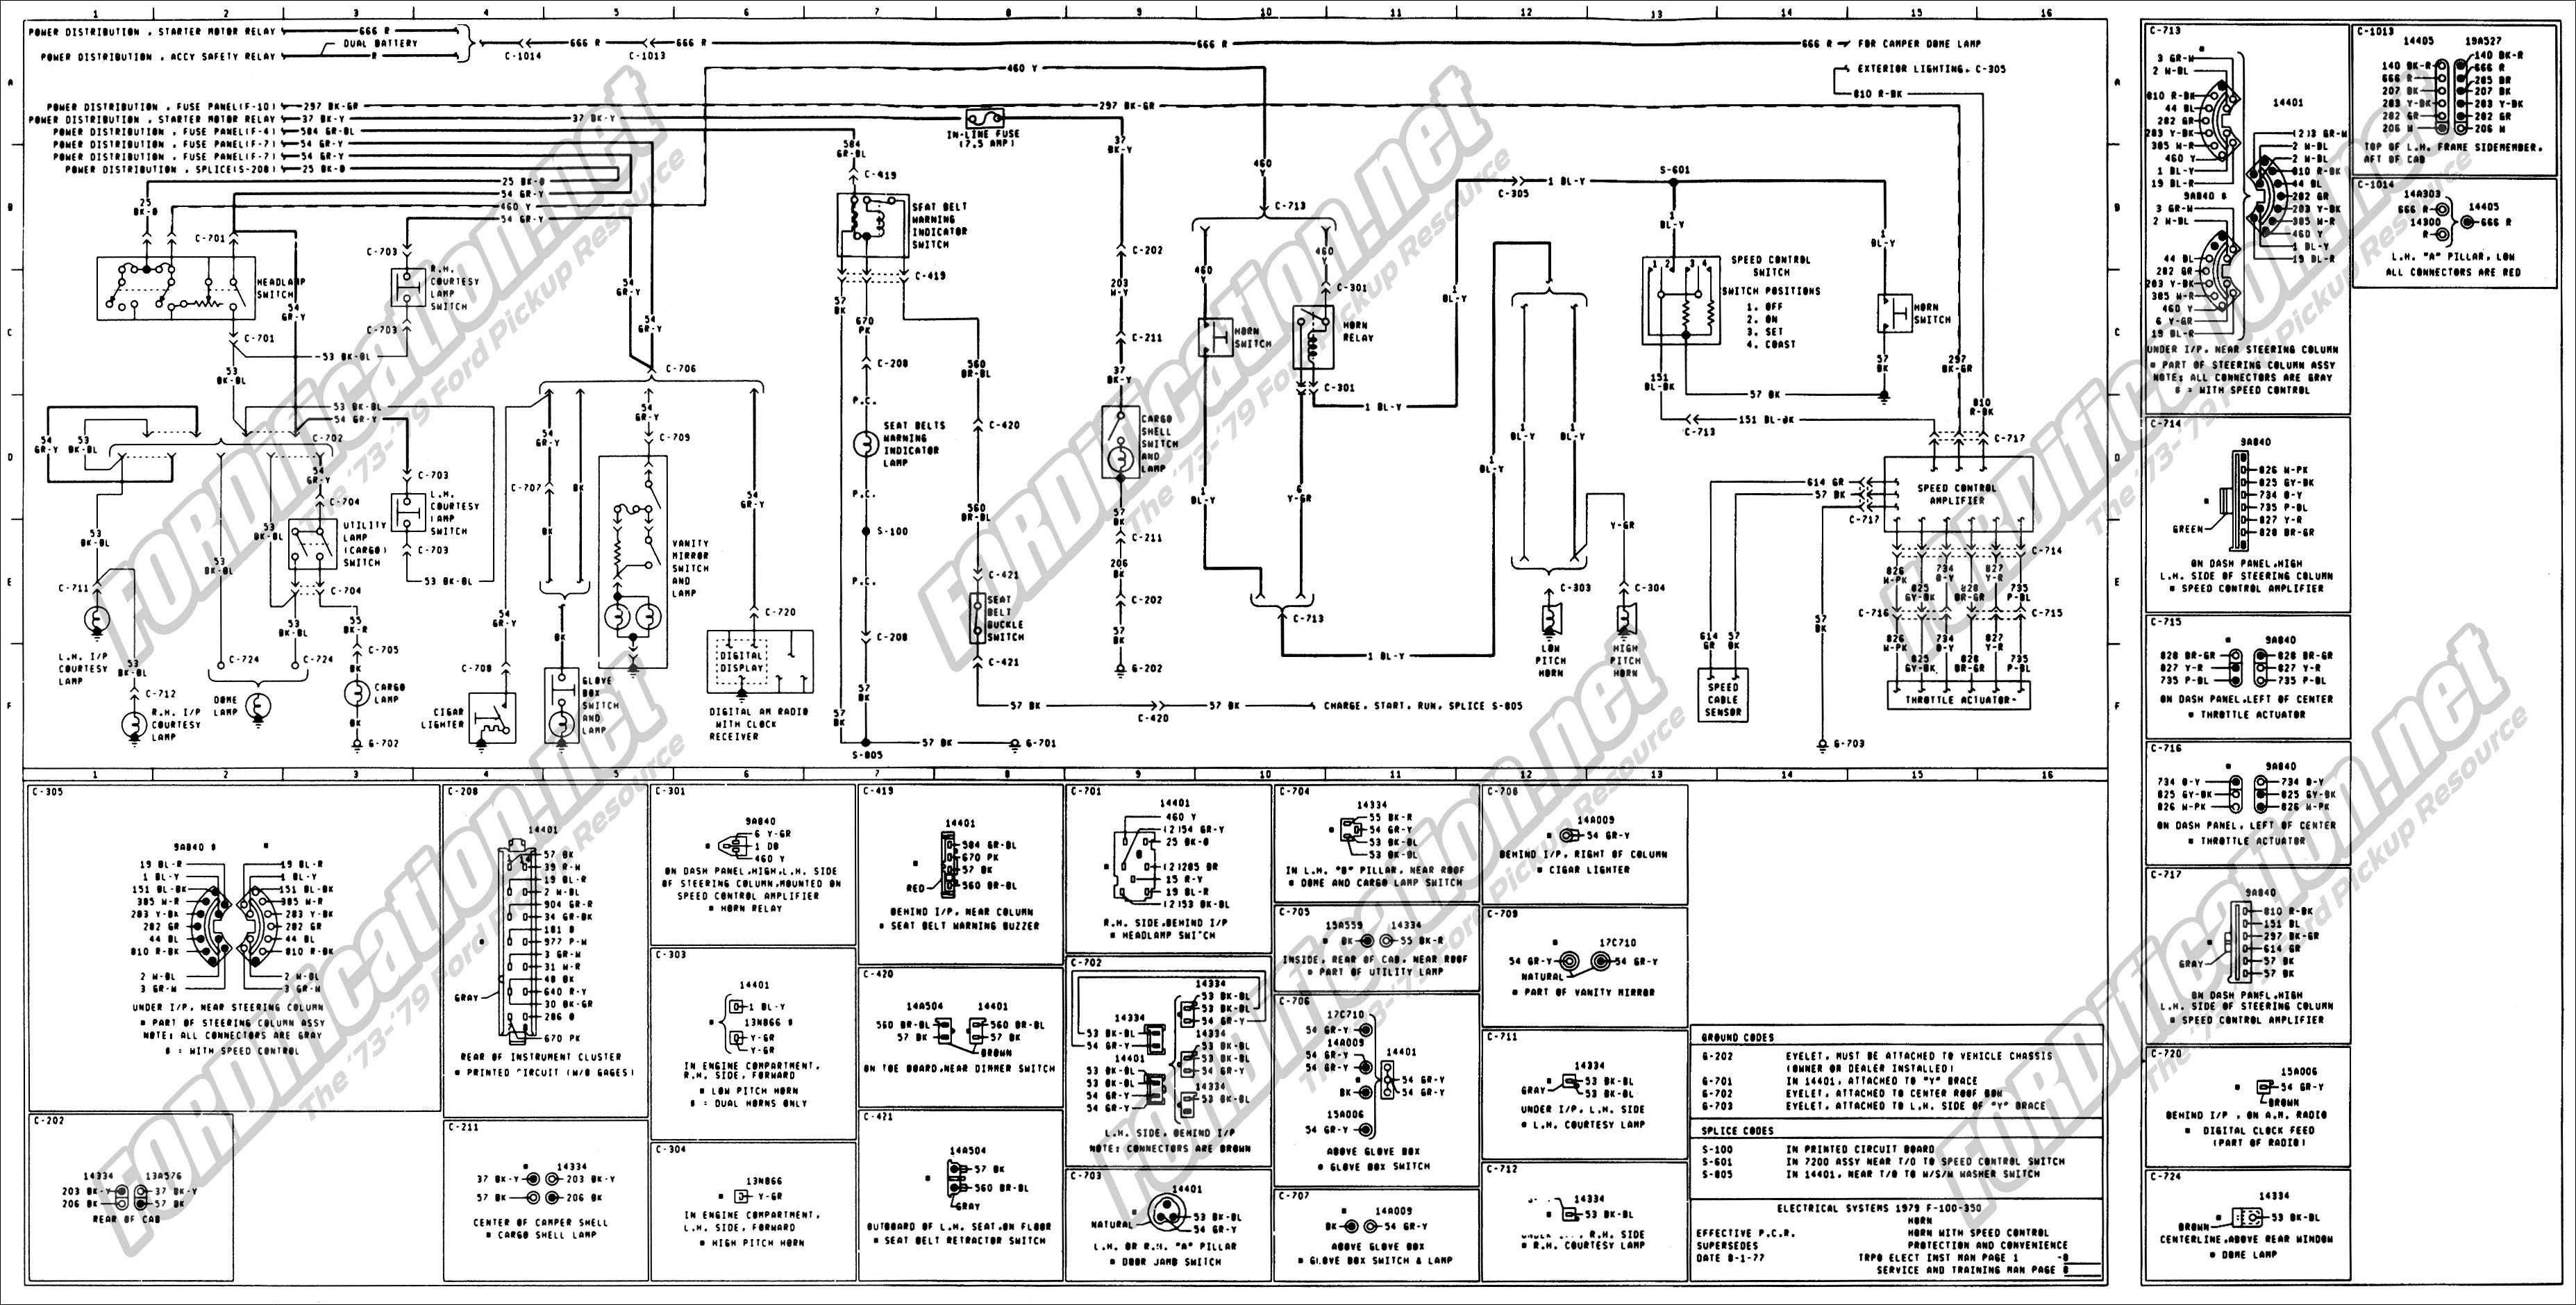 Ford F350 Wiring Diagram for Trailer Plug New Great 2003 ford F350 Wiring Diagram 62 About